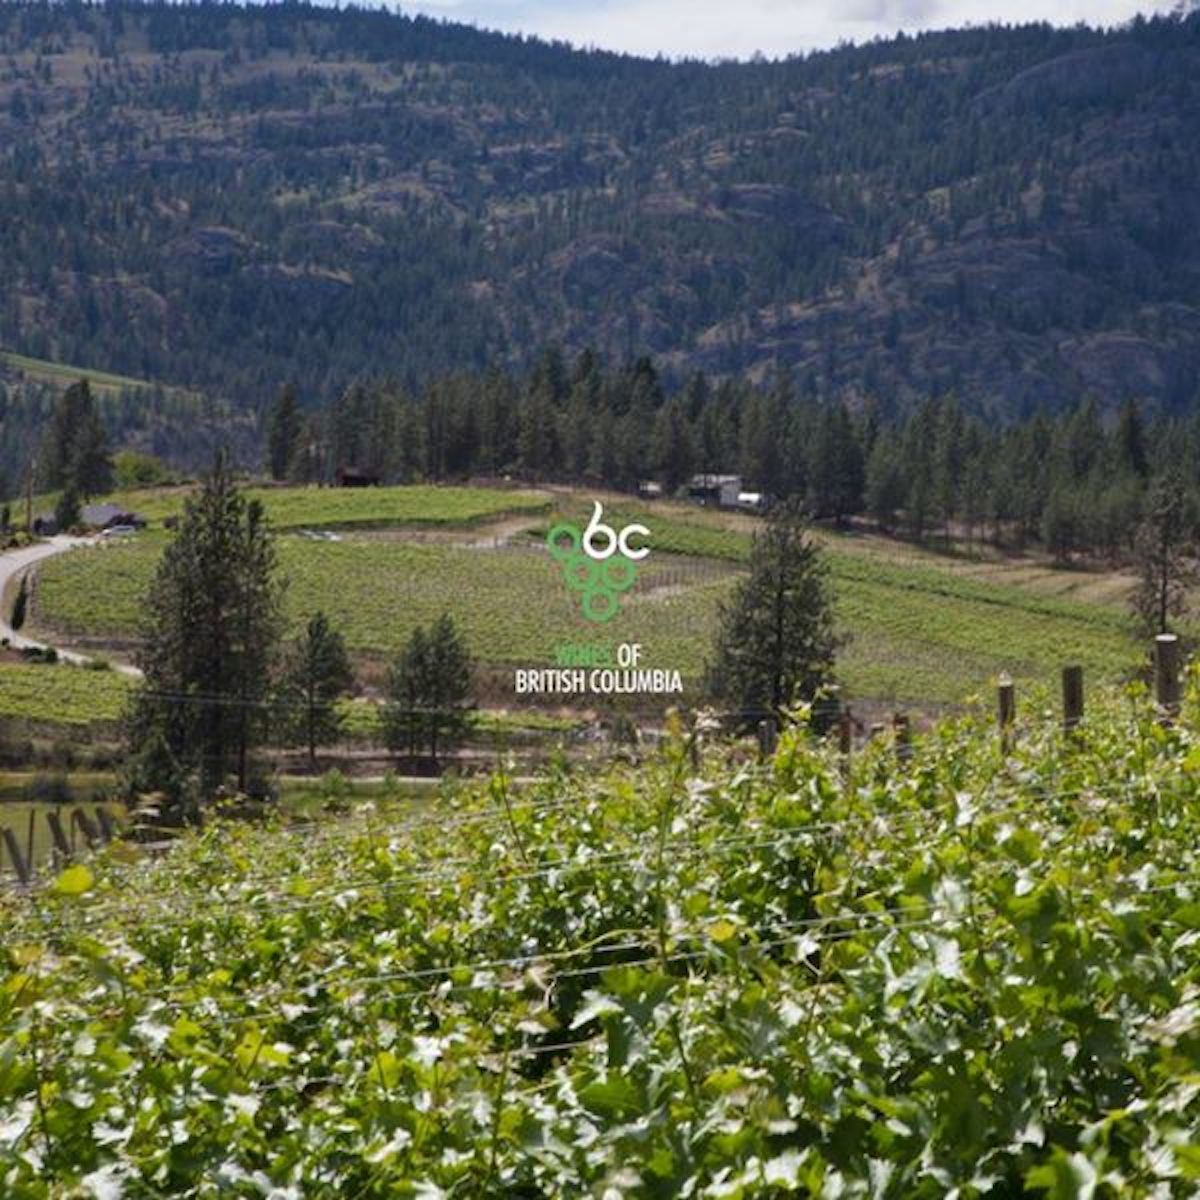 Okanagan Falls Wineries Association the second sub-appellation in British Columbia